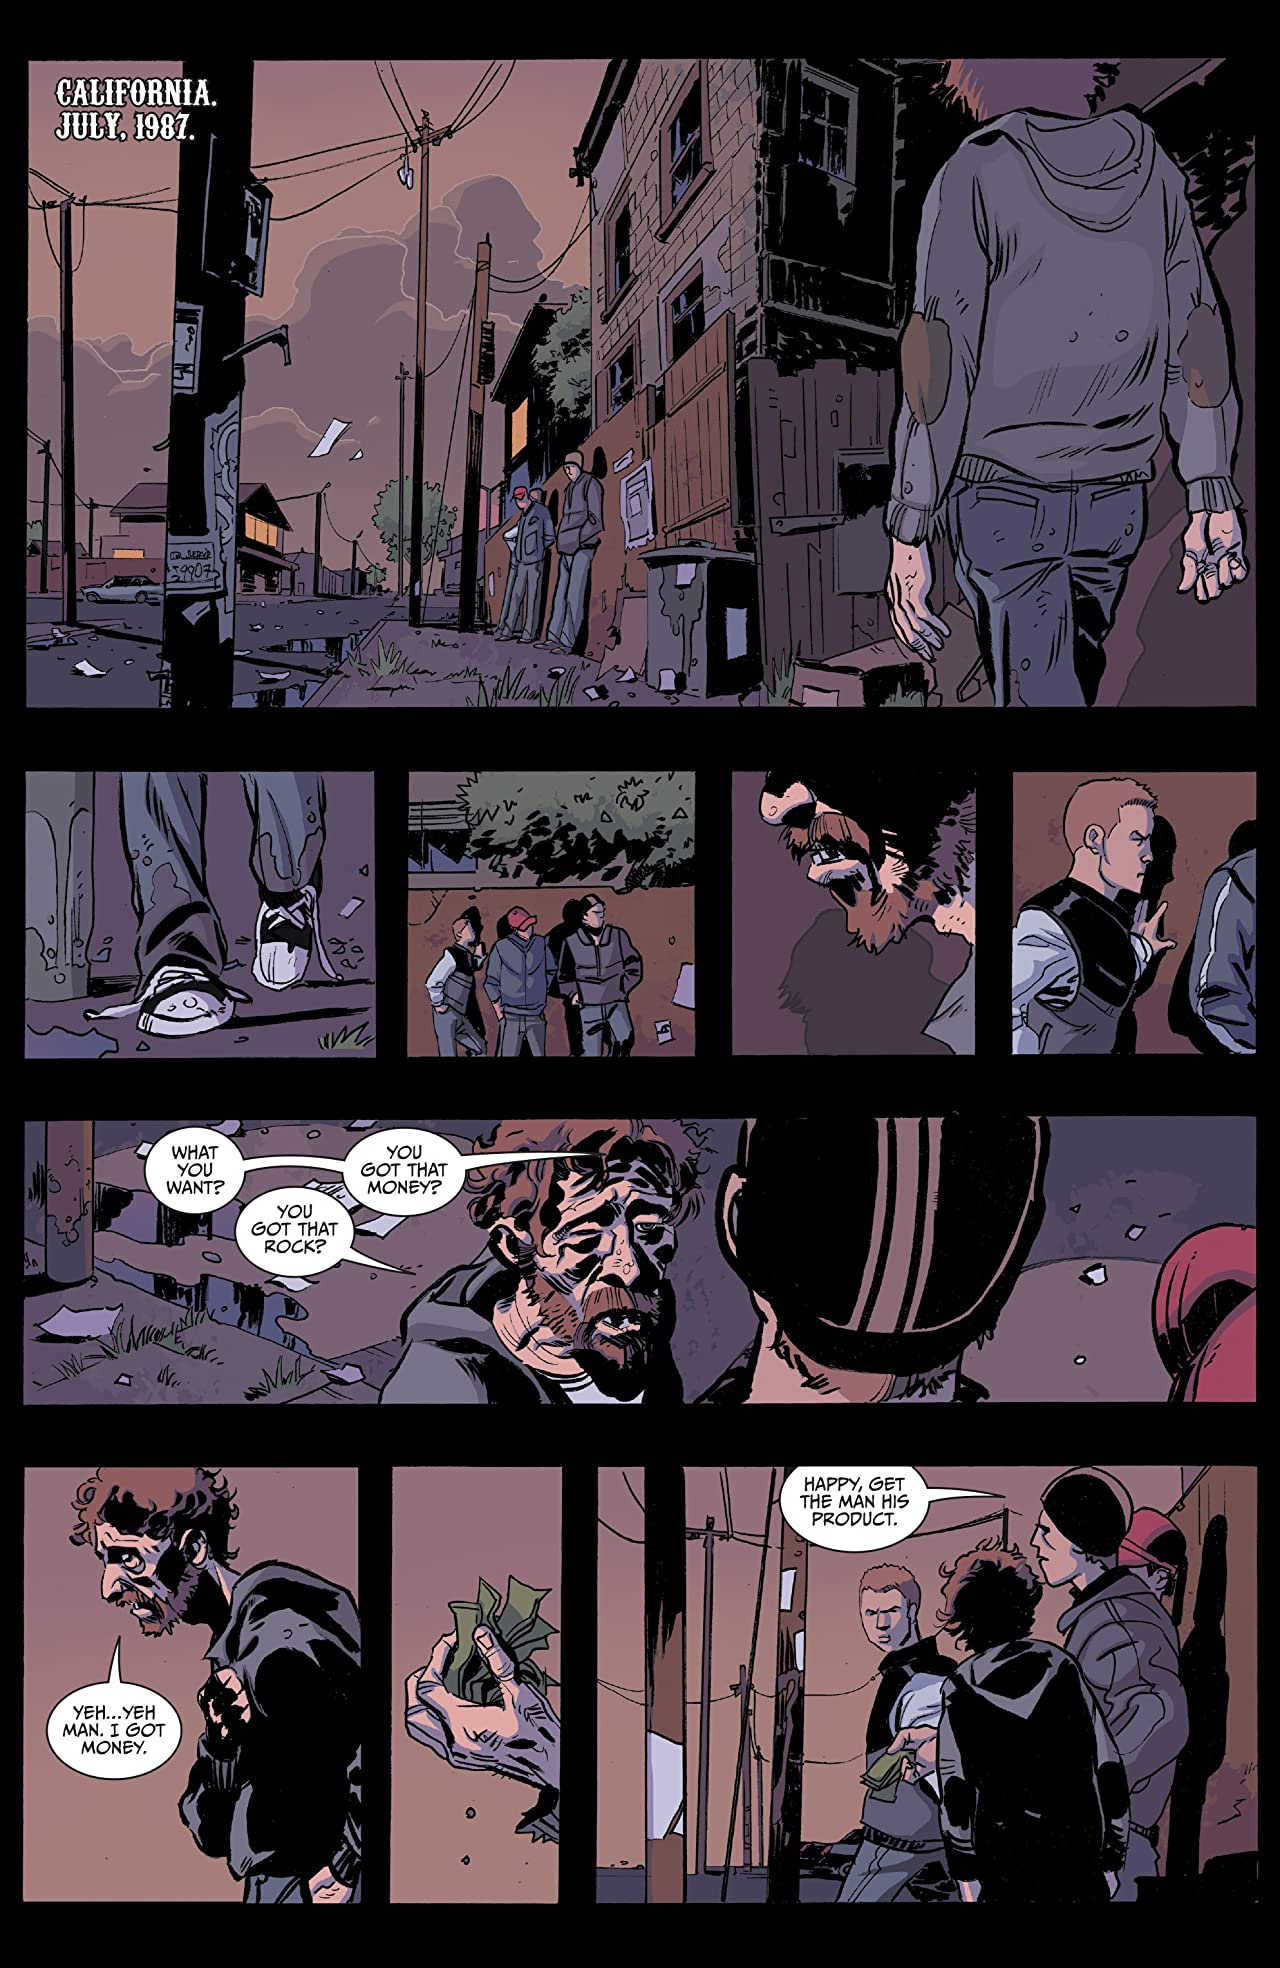 Sons of Anarchy #18